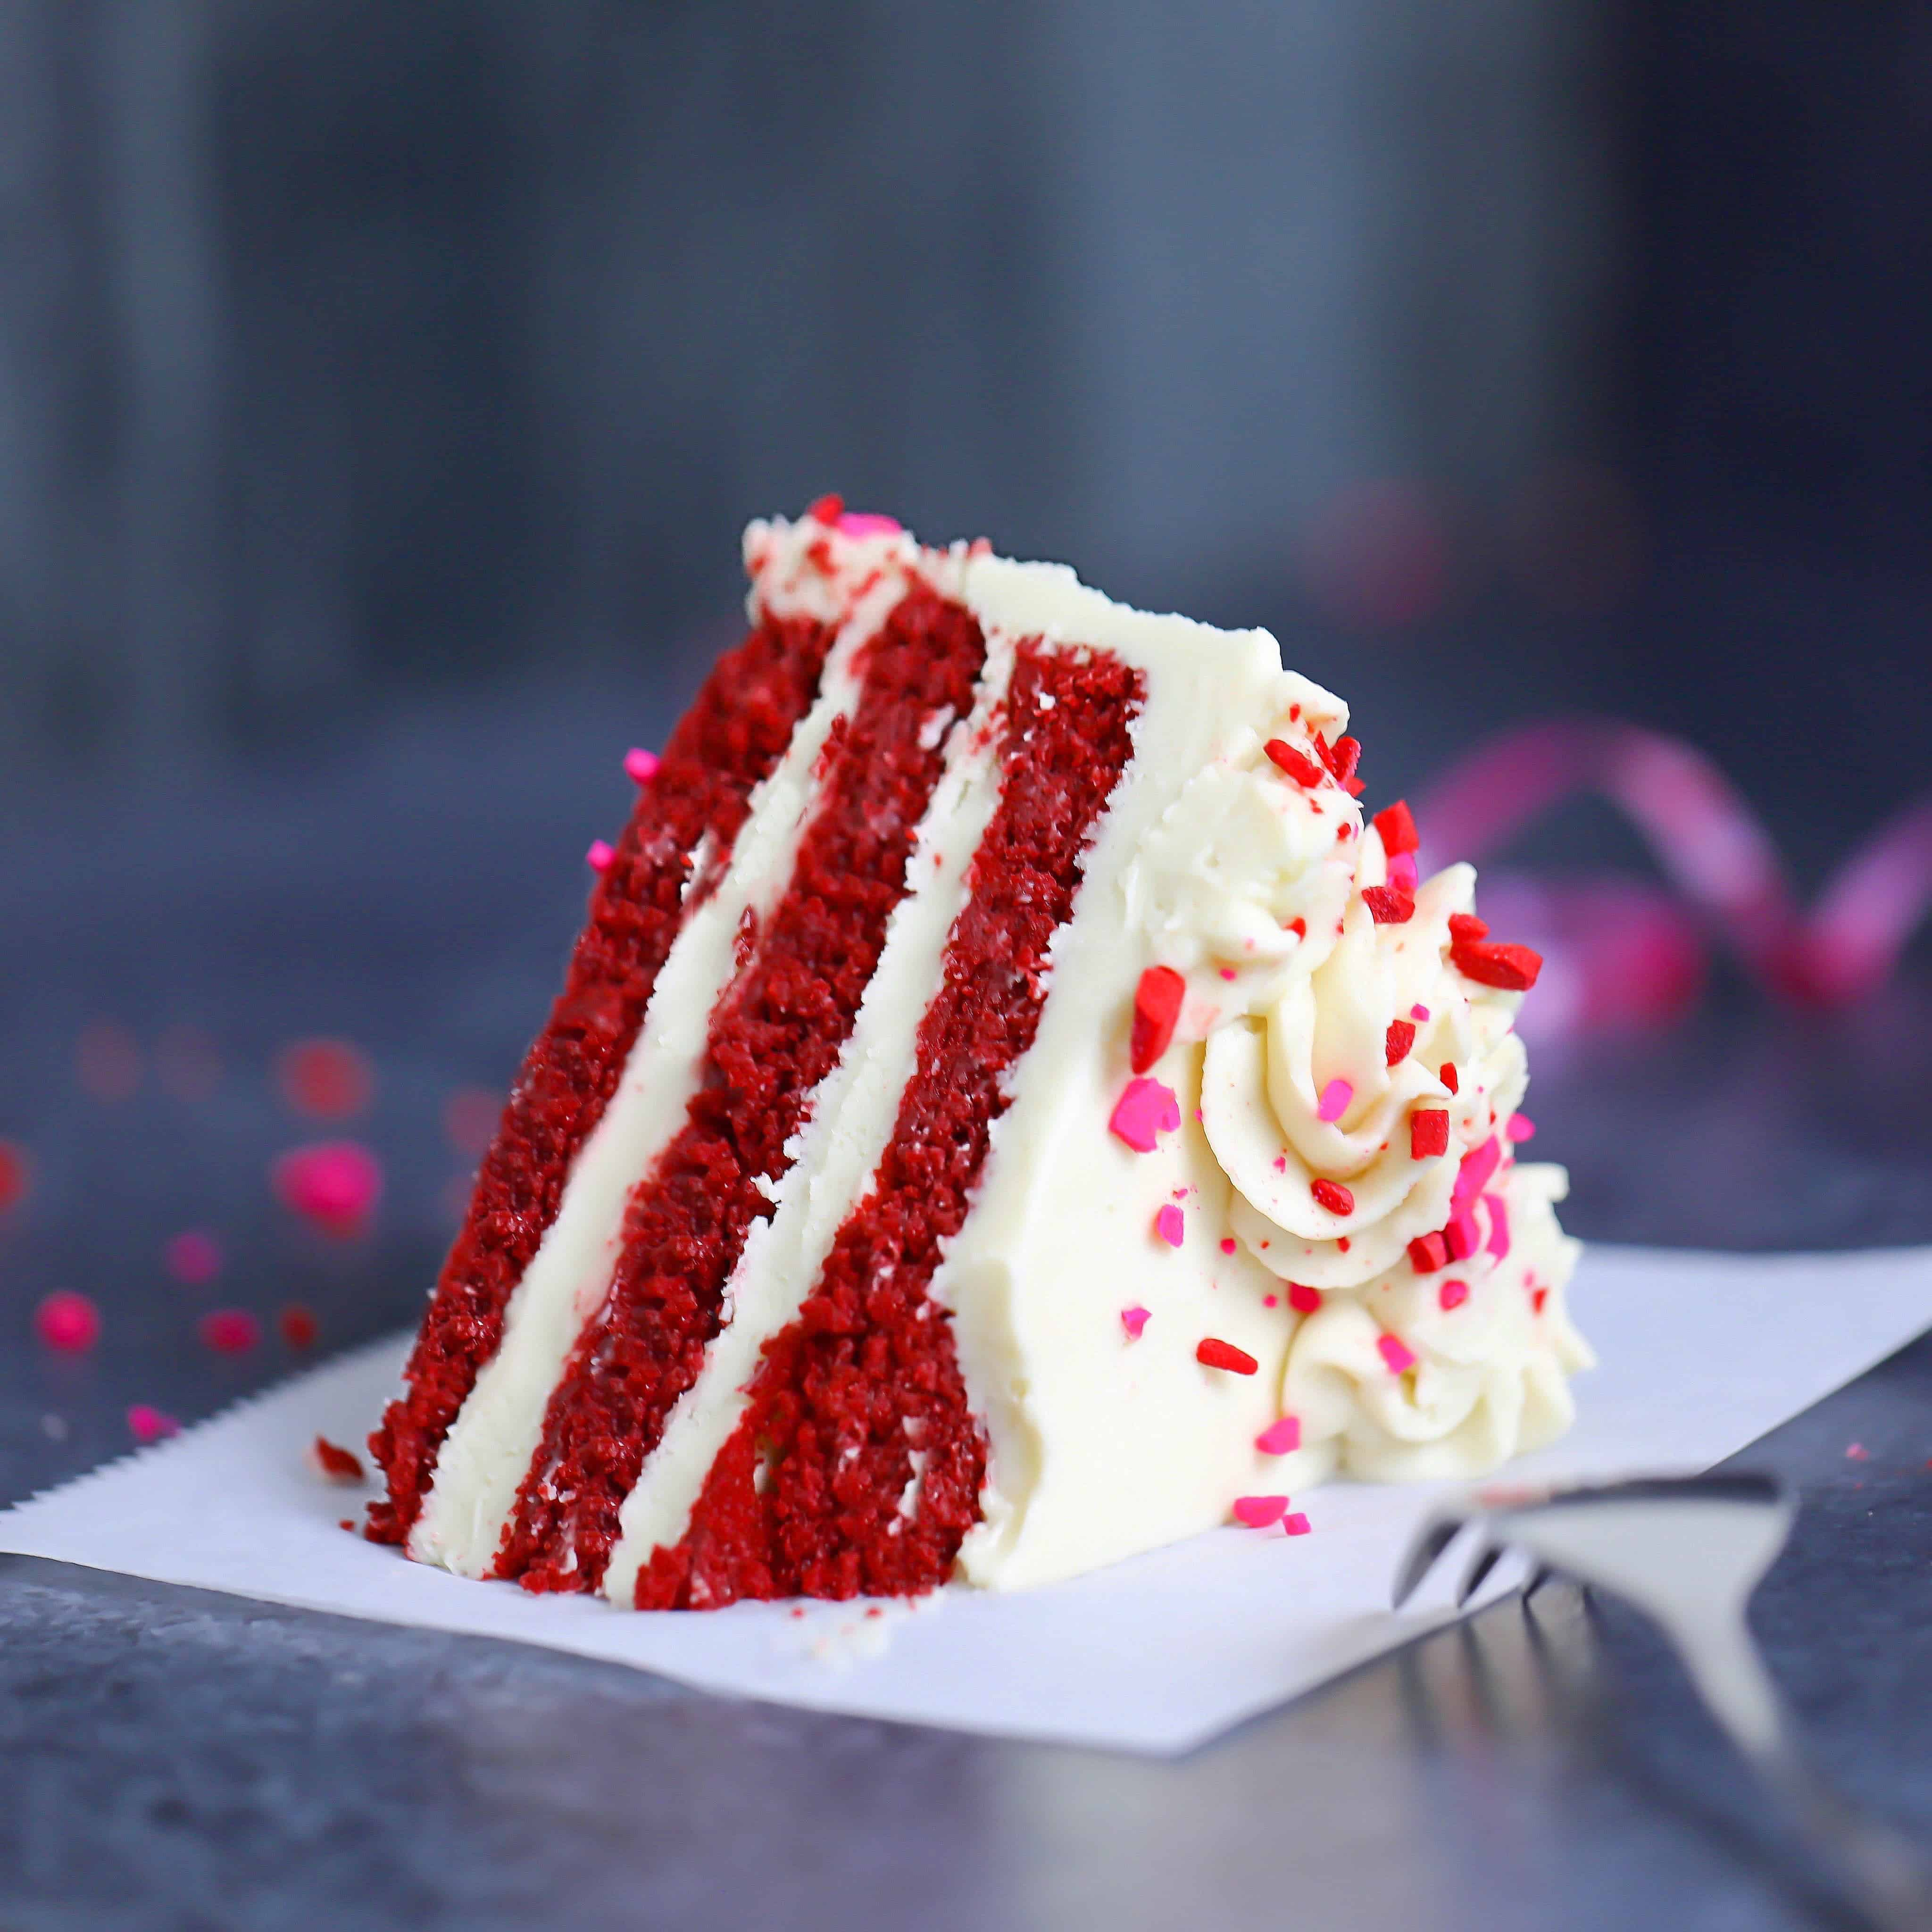 Low-Carb Red Velvet Cake/Cupcakes